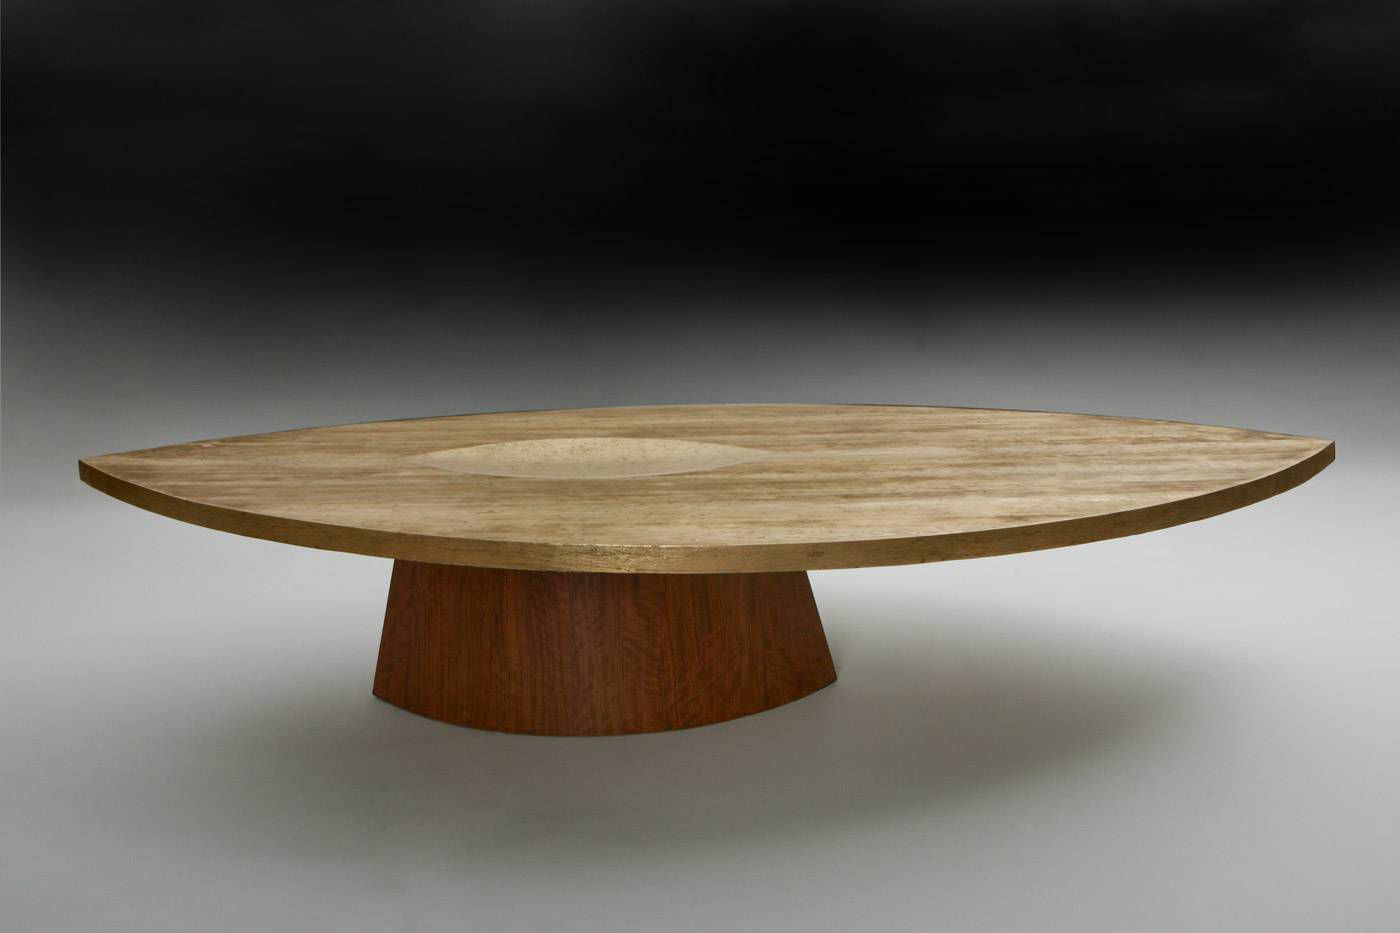 Table De Salon Noir Table Basse En Bois Massif Design Table De Salon Noir Africaculture